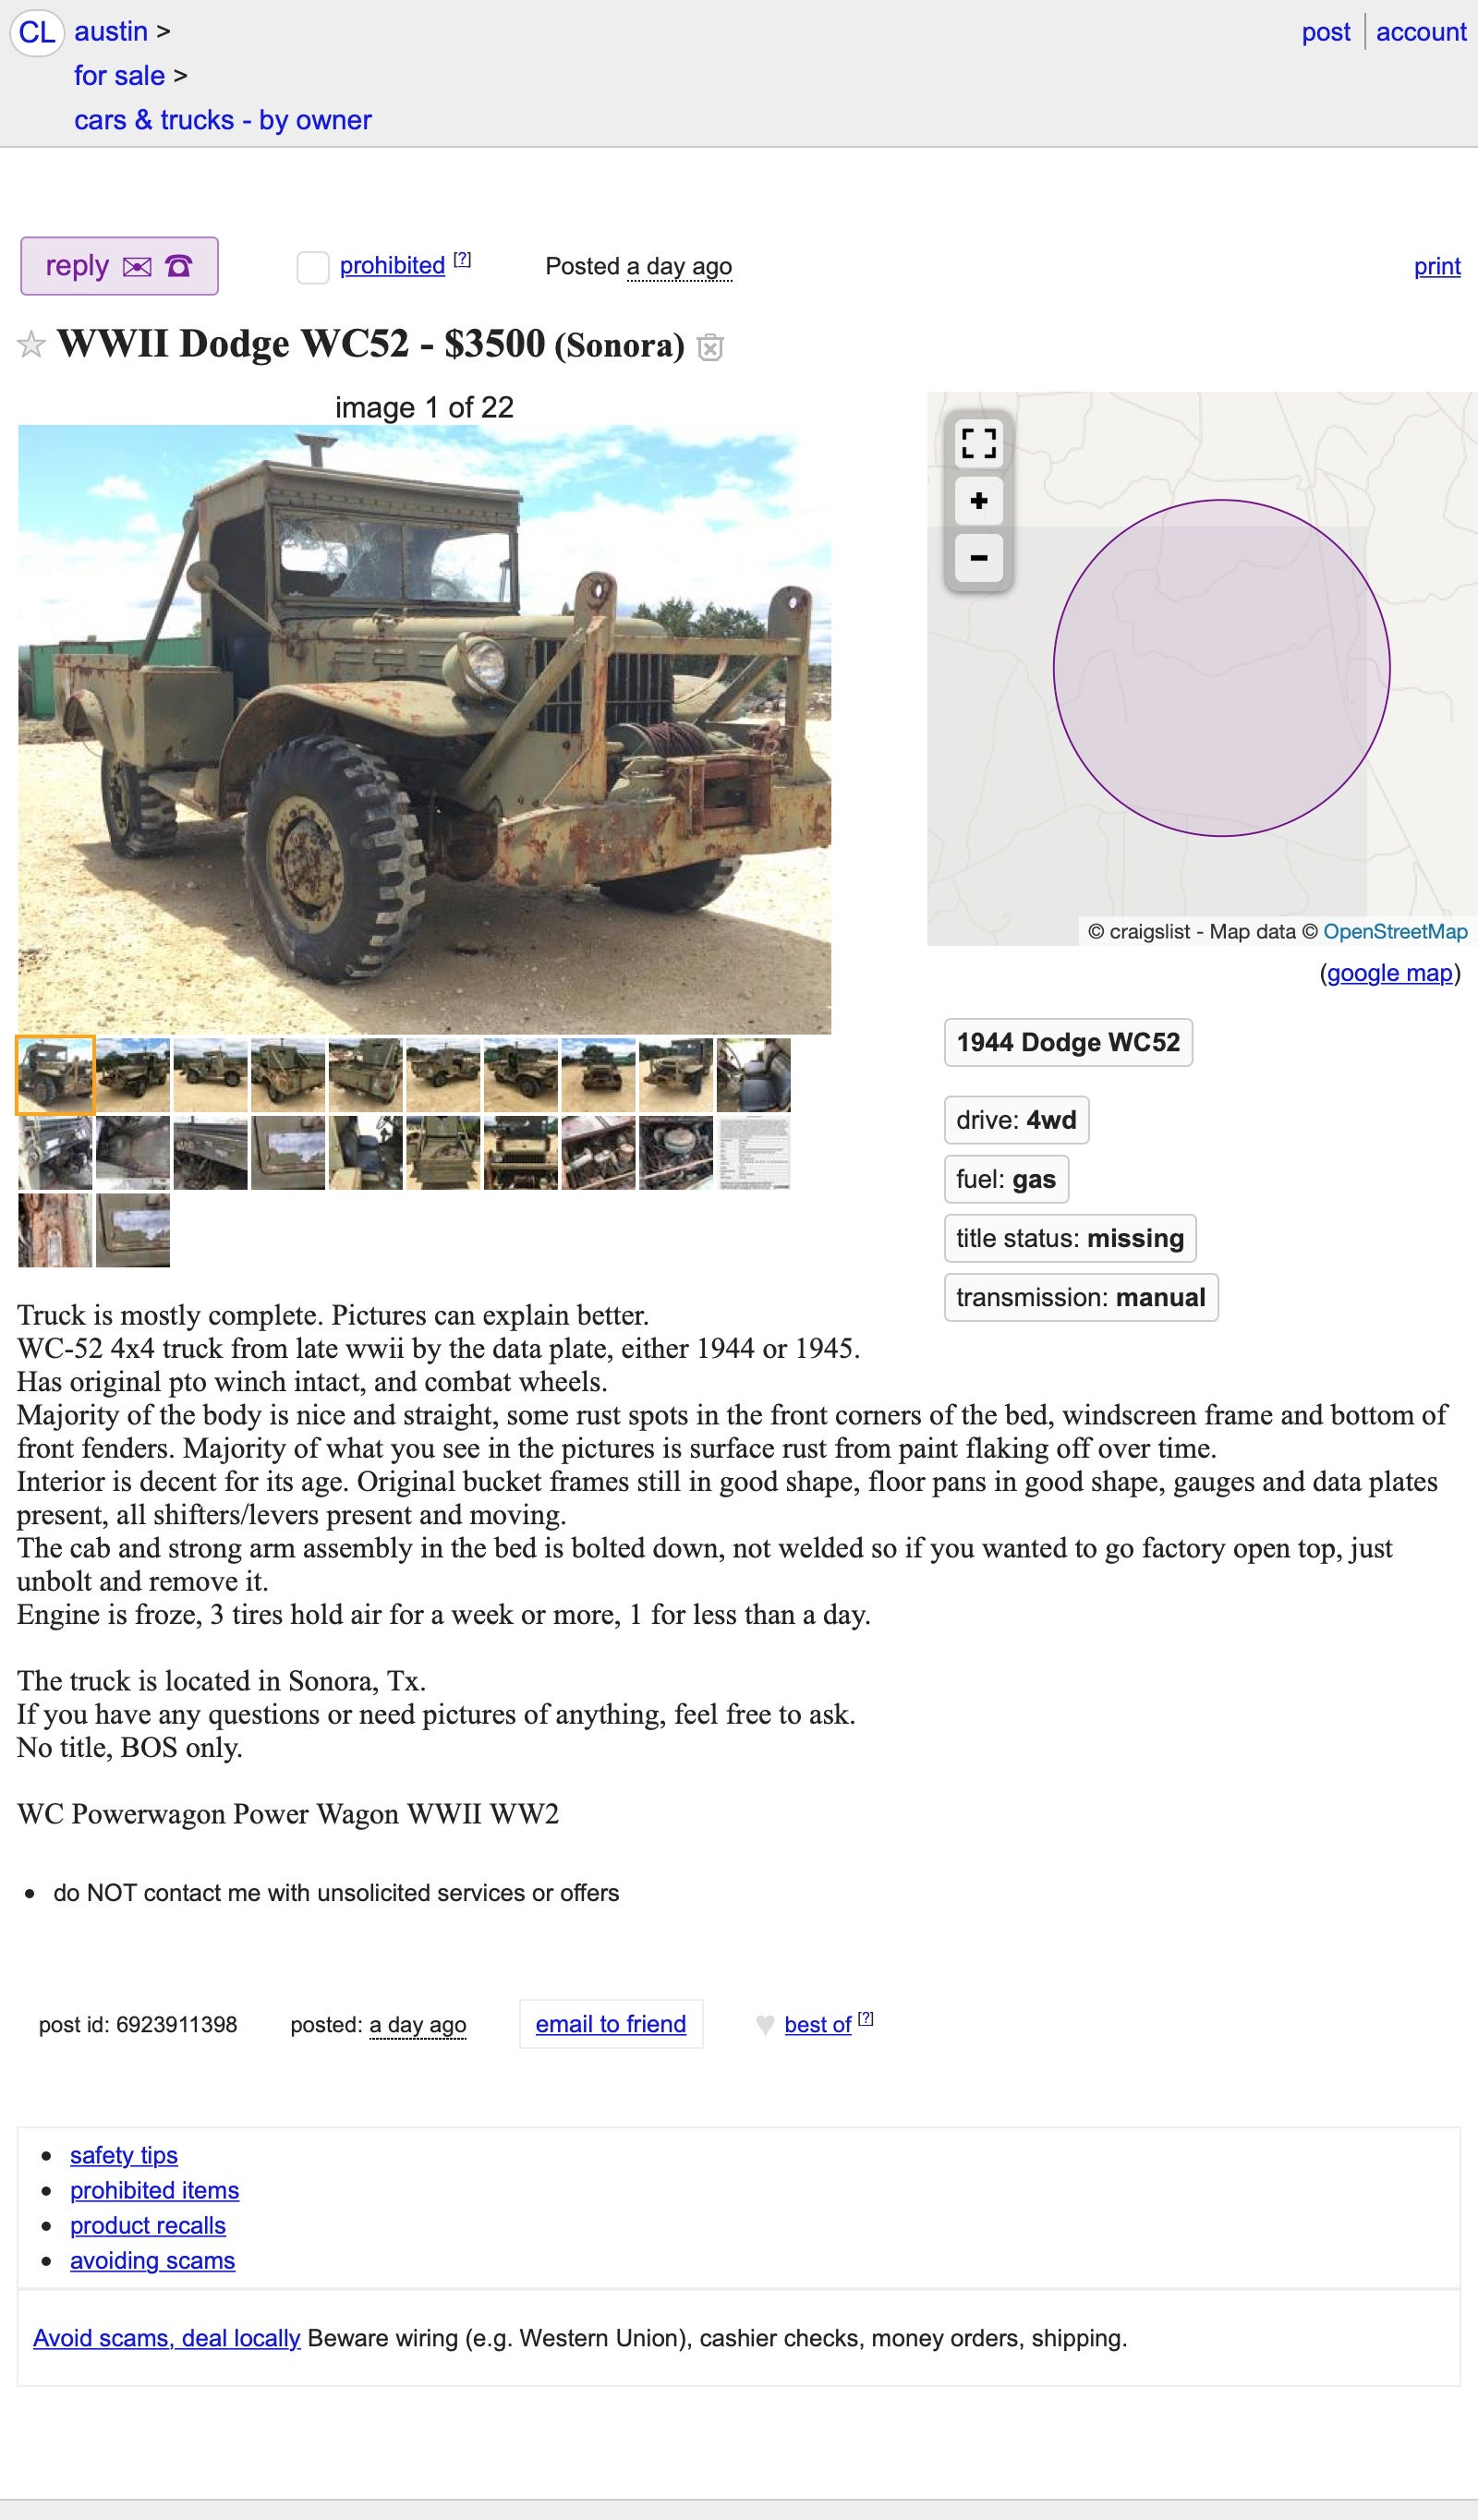 At $3,500, Is This 1944 Dodge WC-52 Military Truck Ready to